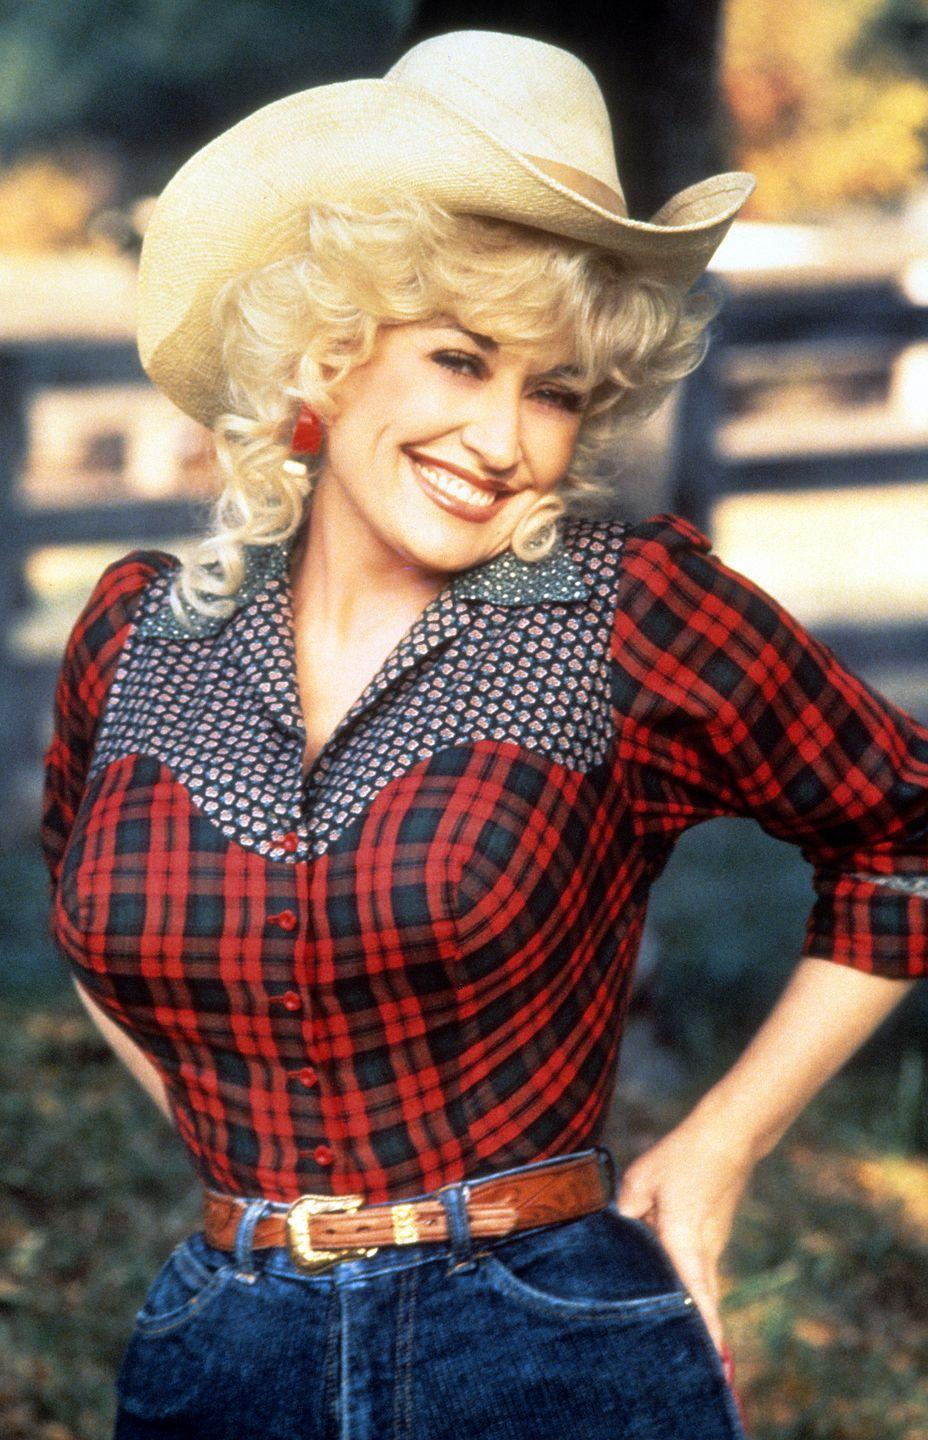 """<p>This now-famous portrait was taken for Parton's film, """"Rhinestone,"""" where she starred alongside Sylvester Stallone. The pair earned stars on the Hollywood Walk of Fame following the film's release even though it was considered a flop.</p>"""